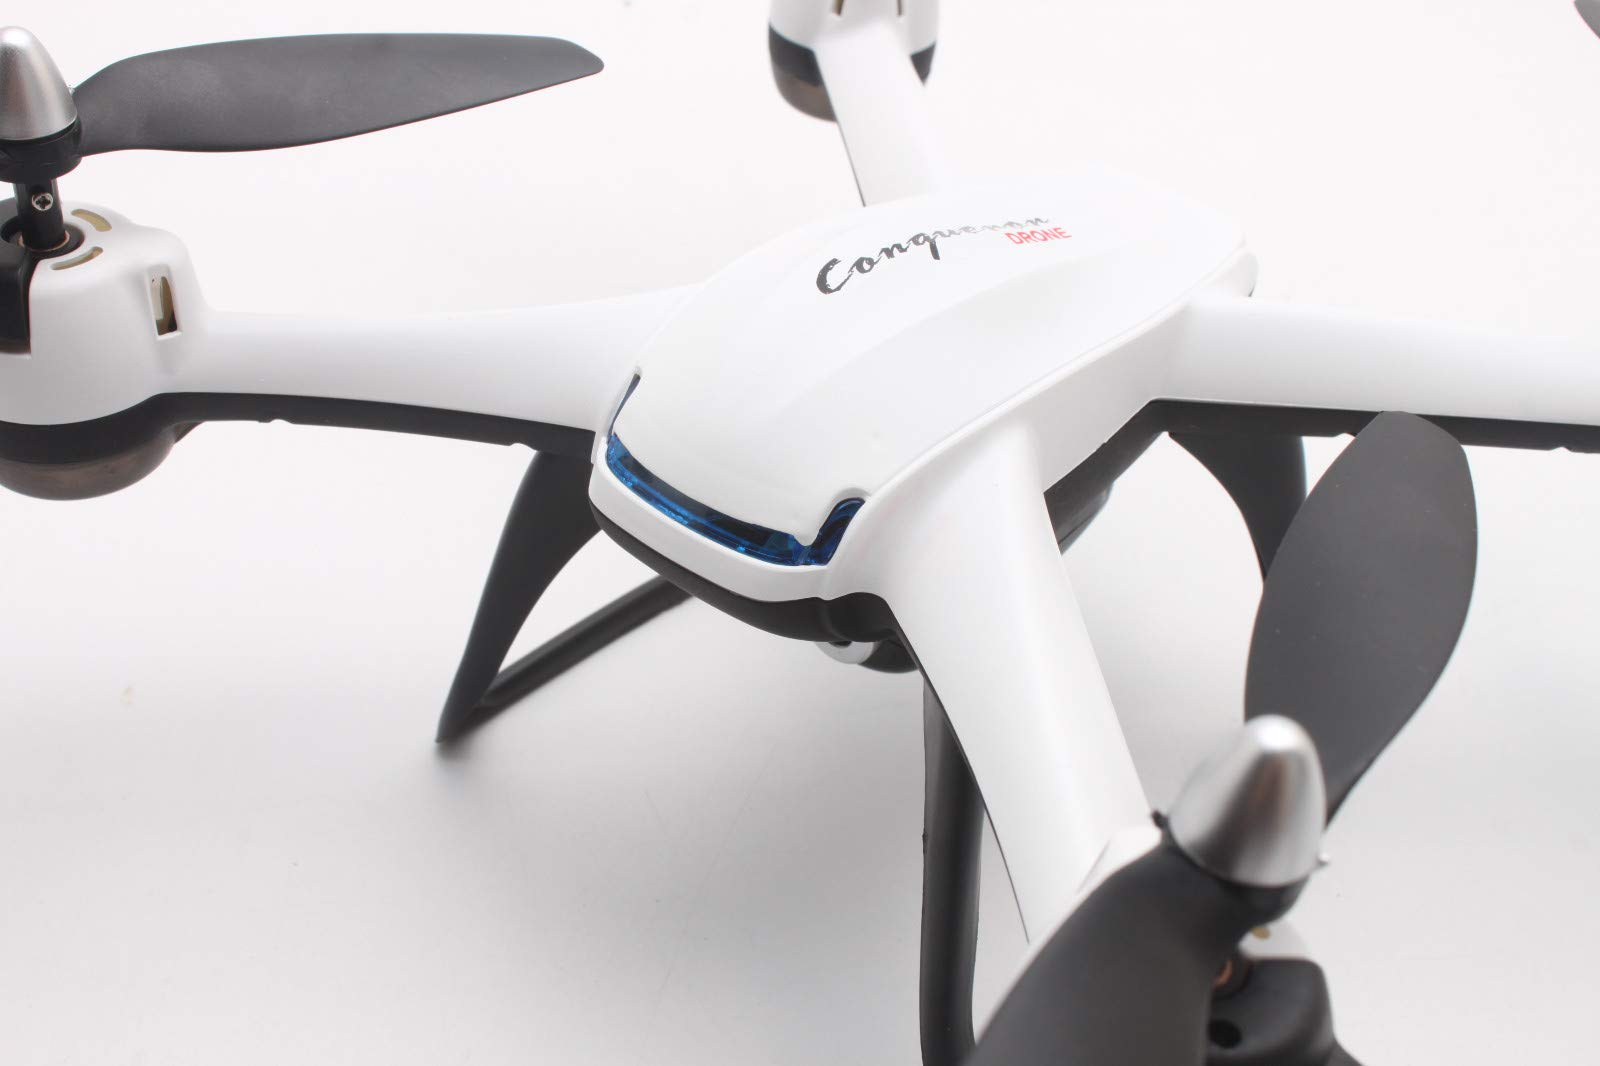 quietJUNjun toy RC Helicopter,DM009 2.4GHz 6-Axis Gyro 5MP Drone (White) by quietJUNjun toy (Image #4)